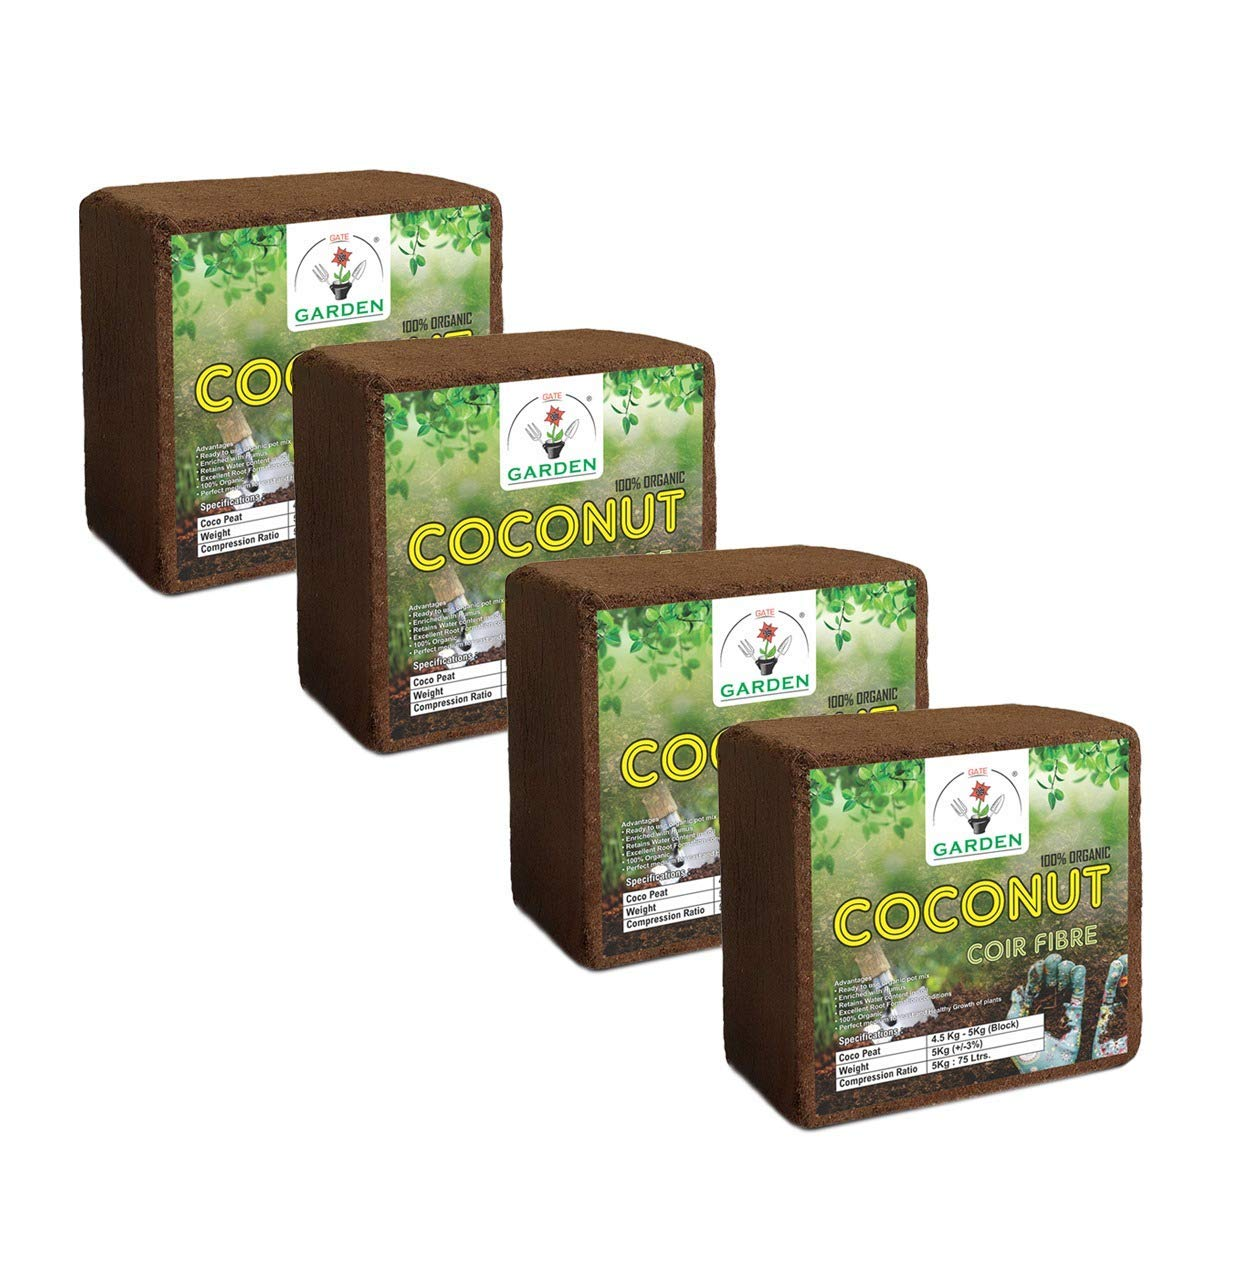 Kraft Seeds Gate Garden Cocopeat GRO-peat Block, Expands Up to 300 litres of Coco Peat Powder